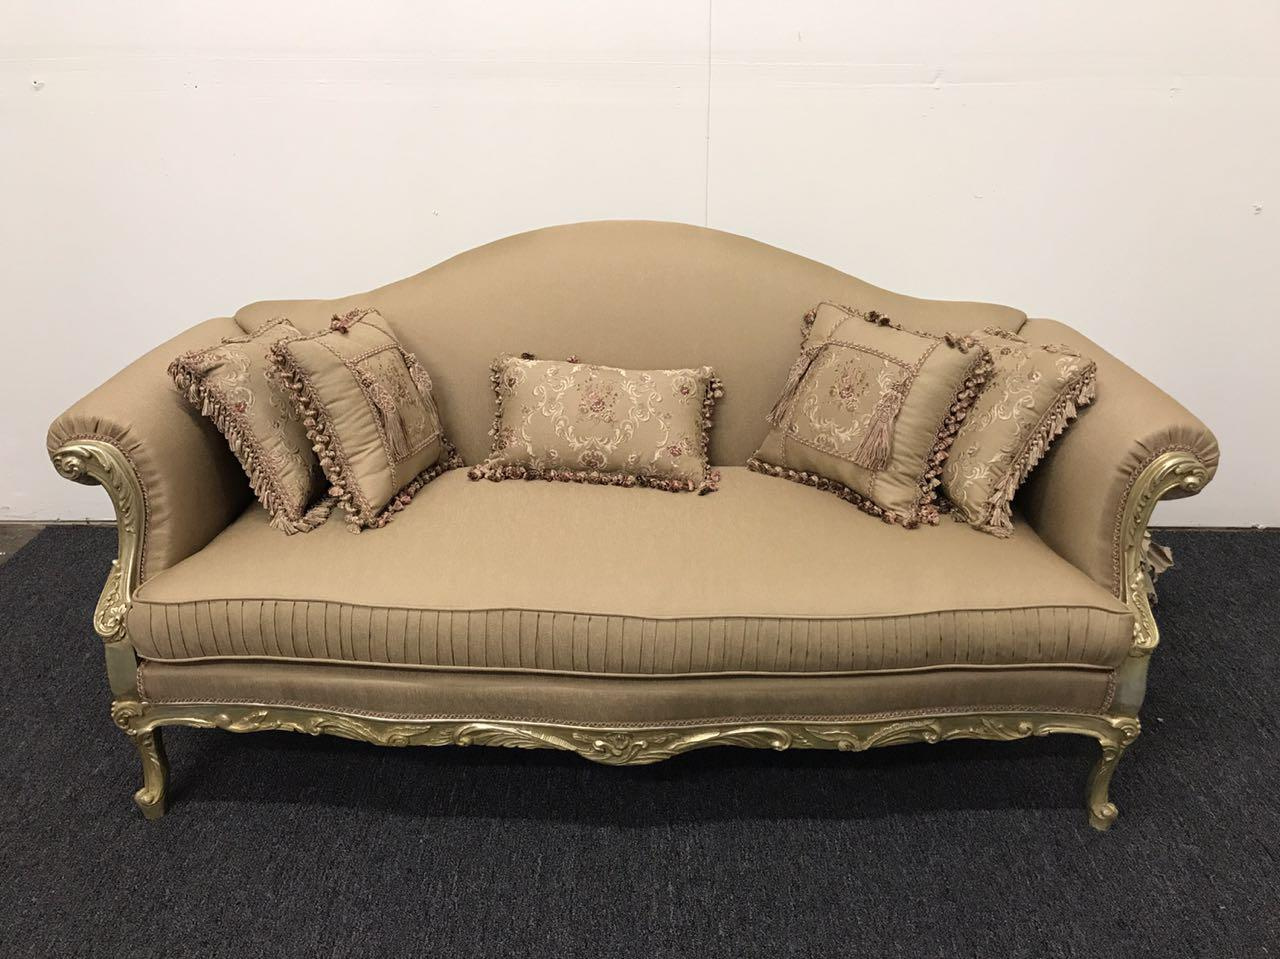 Empire Authentic Handmade French Style Sofa For Sale   Image 3 Of 3